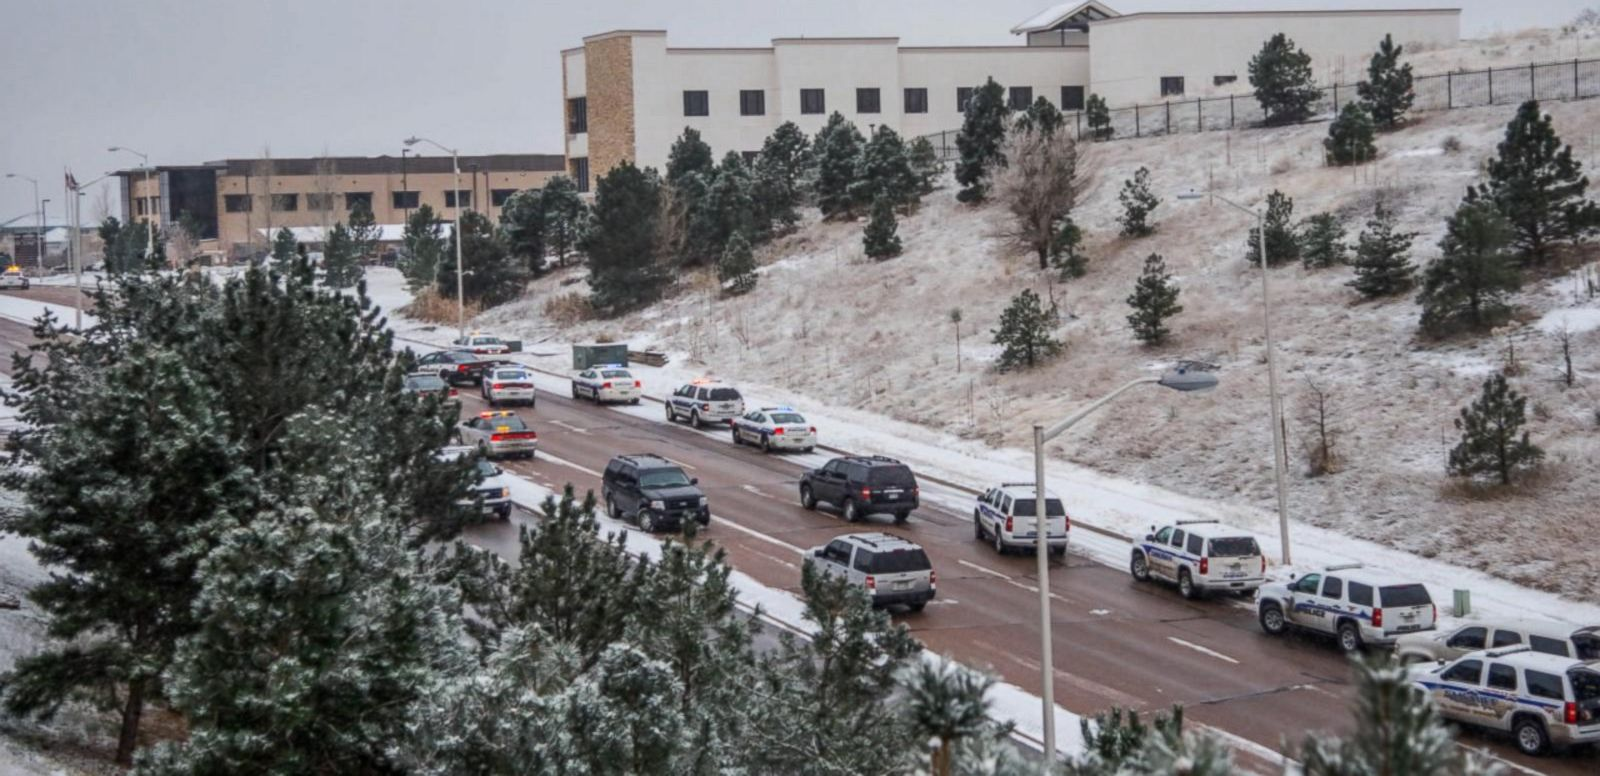 VIDEO: At 1 Policer Officers Killed, Multiple Wounded in a Shooting in Colorado Springs